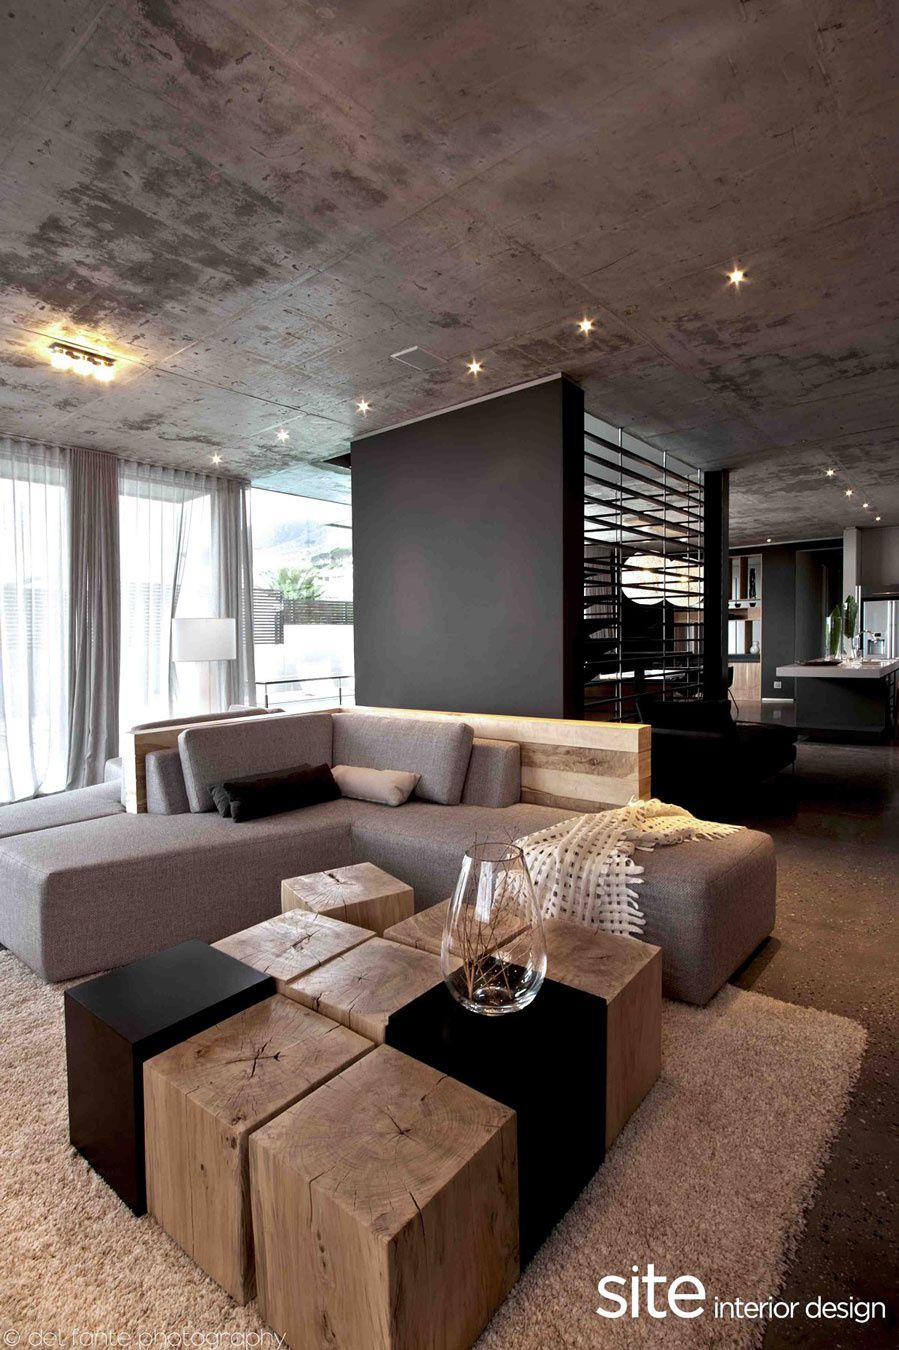 Aupiais House - SITE Interior Design